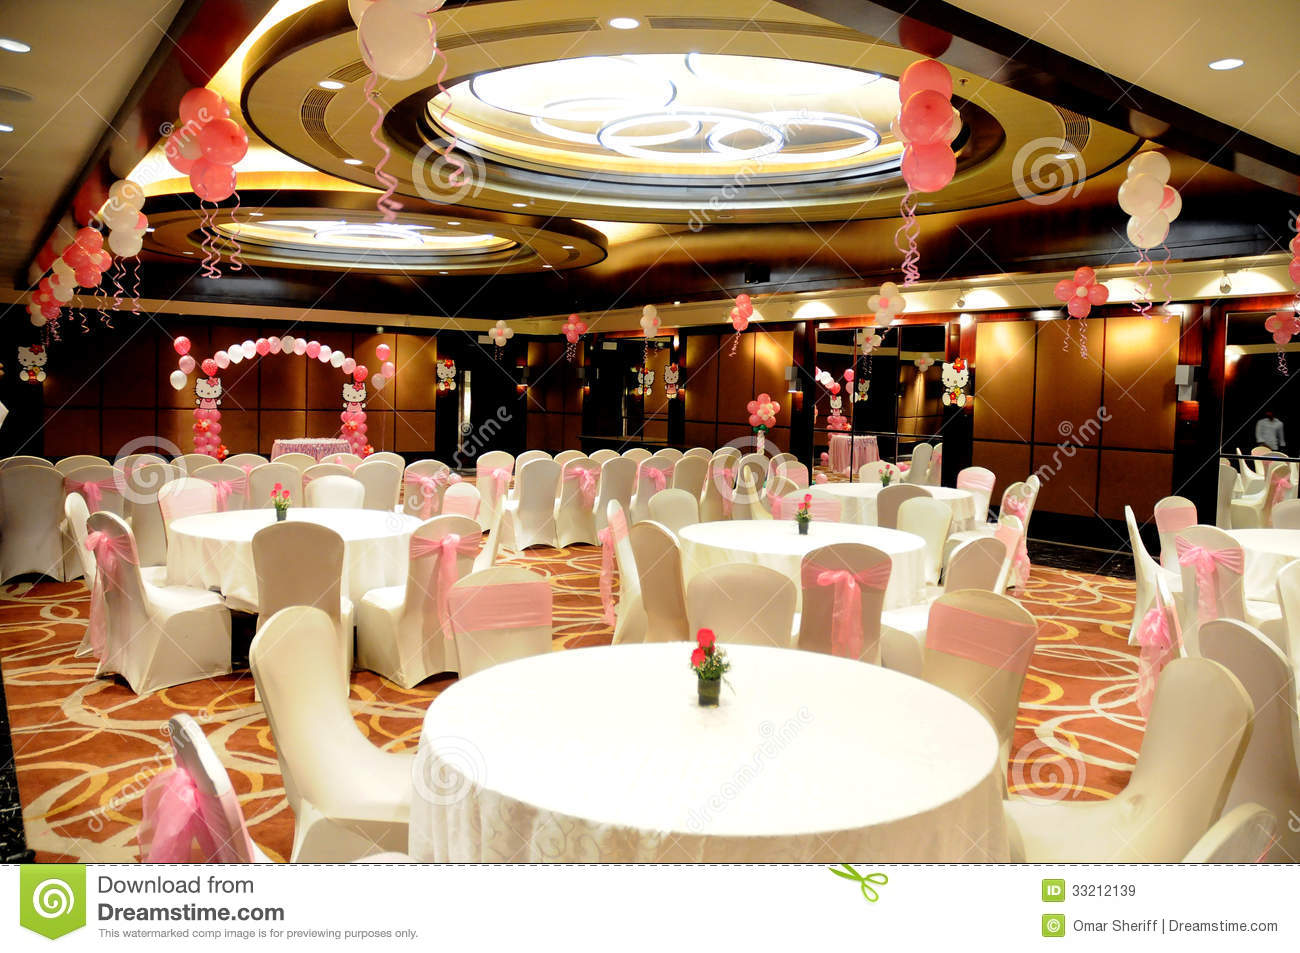 Birthday Party Decorations In Hall Image Inspiration of Cake and